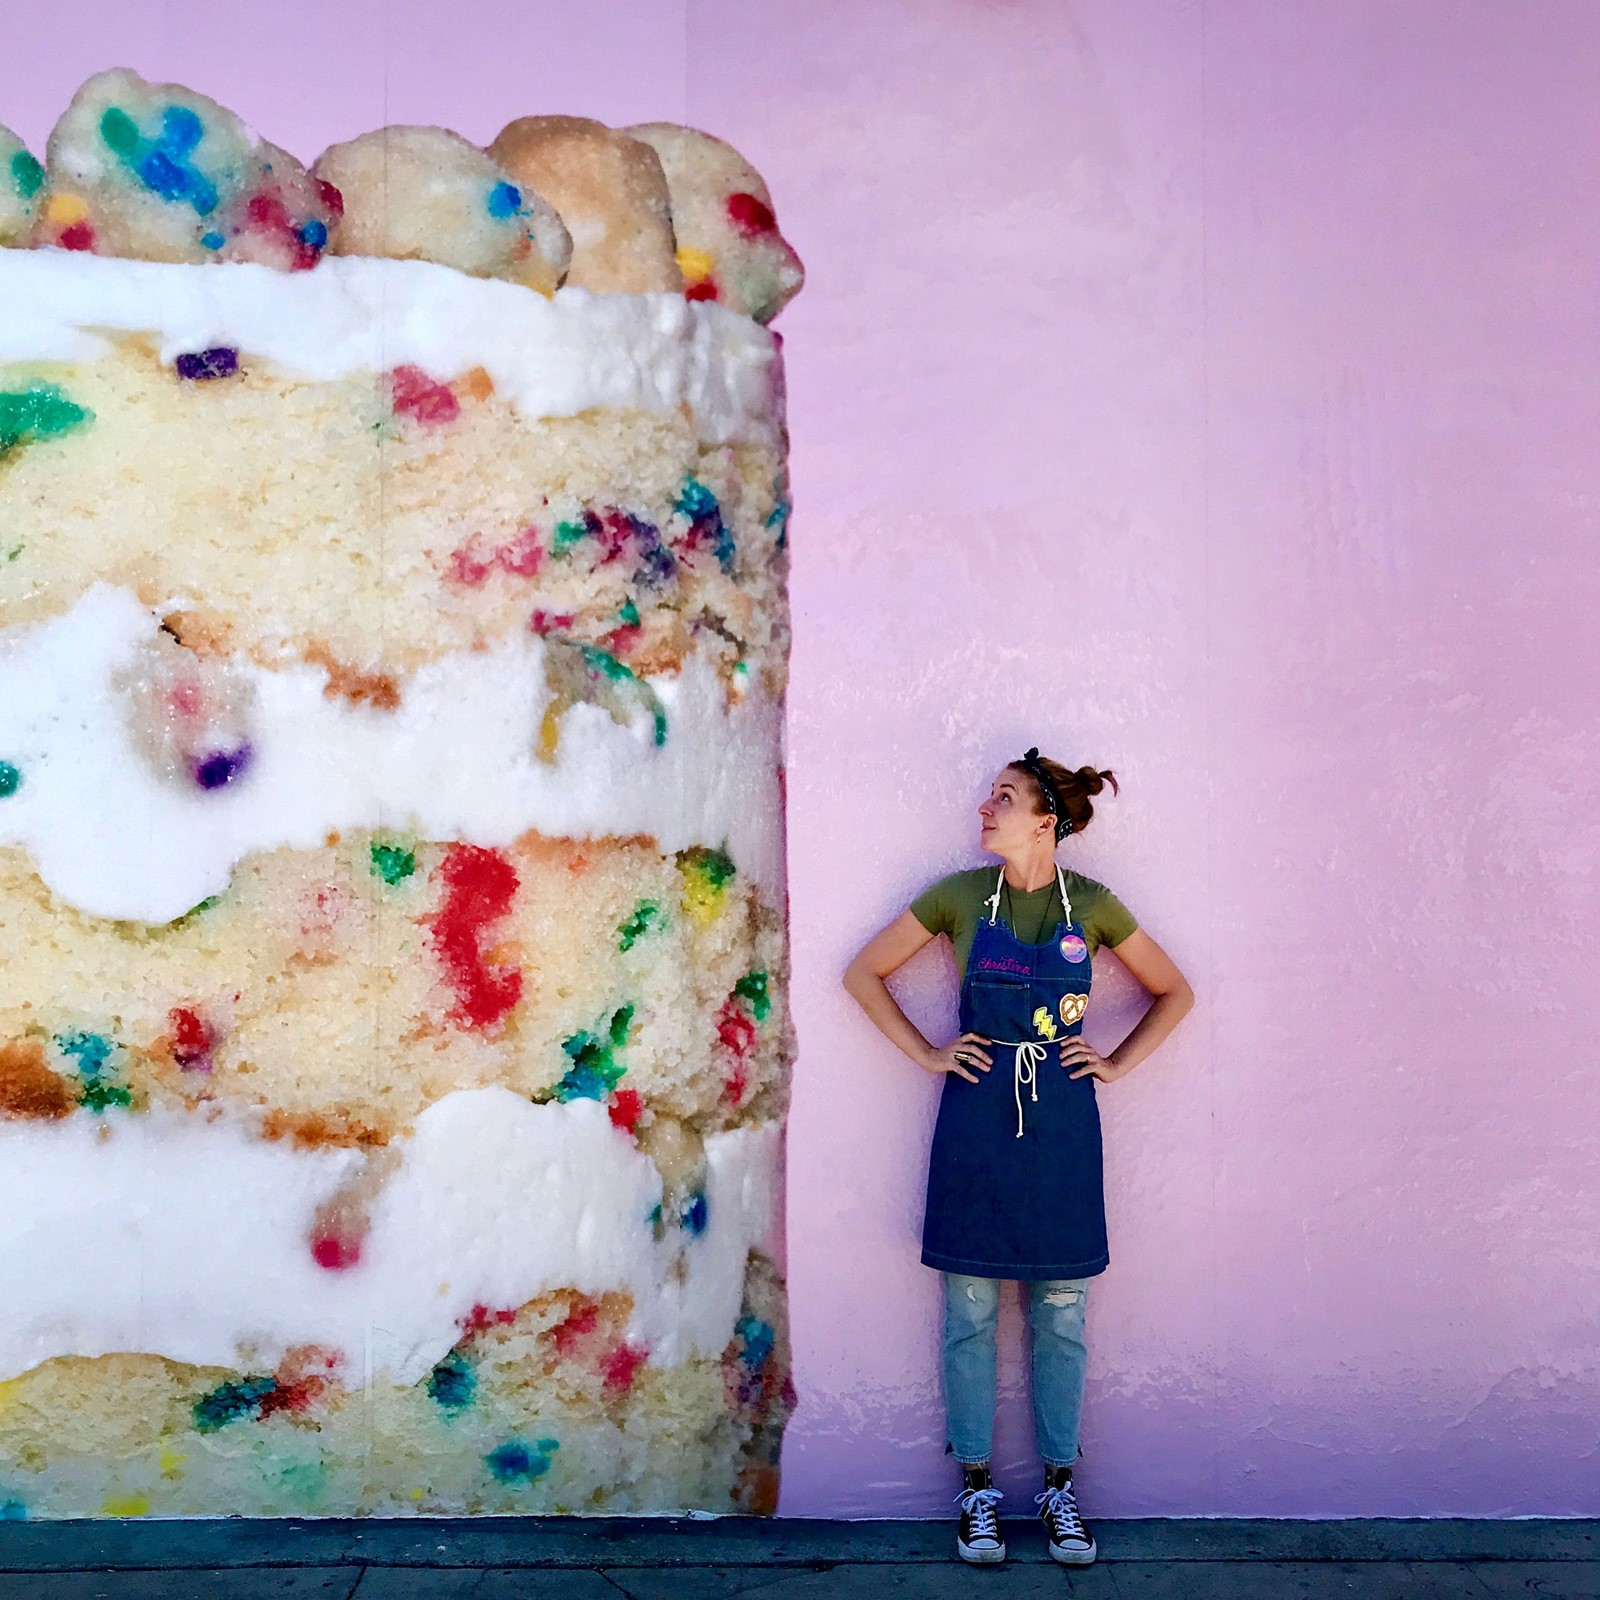 PASTRY CHEF Christina Tosi Above Checks Out A Blown Up Image Of Her Birthday Cake On The Wall Outside New Milk Bar Shop Below Also Production